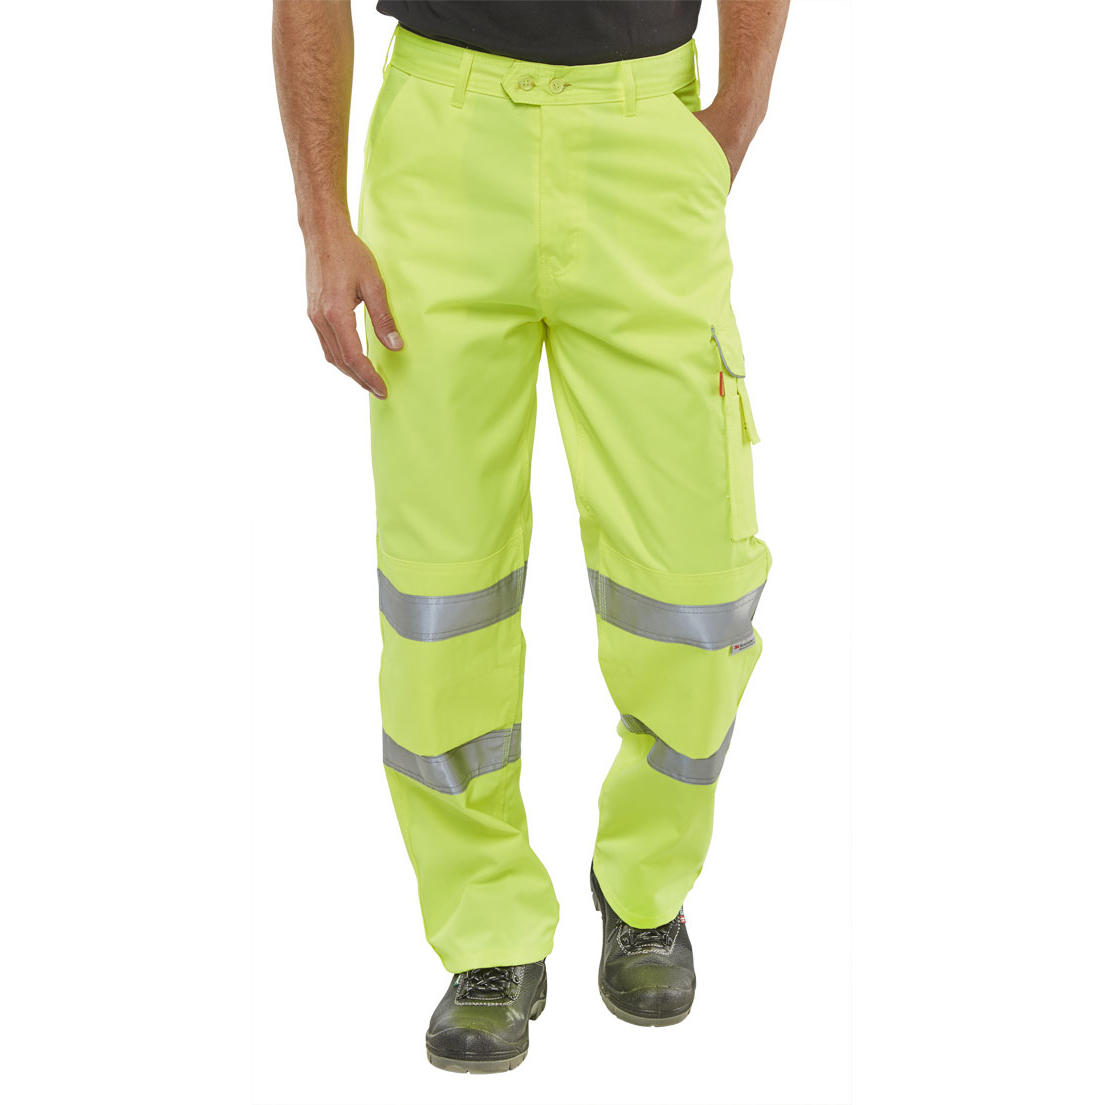 BSeen Trousers Polycotton Hi-Vis EN471 Saturn Yellow 42 Ref PCTENSY42 Up to 3 Day Leadtime